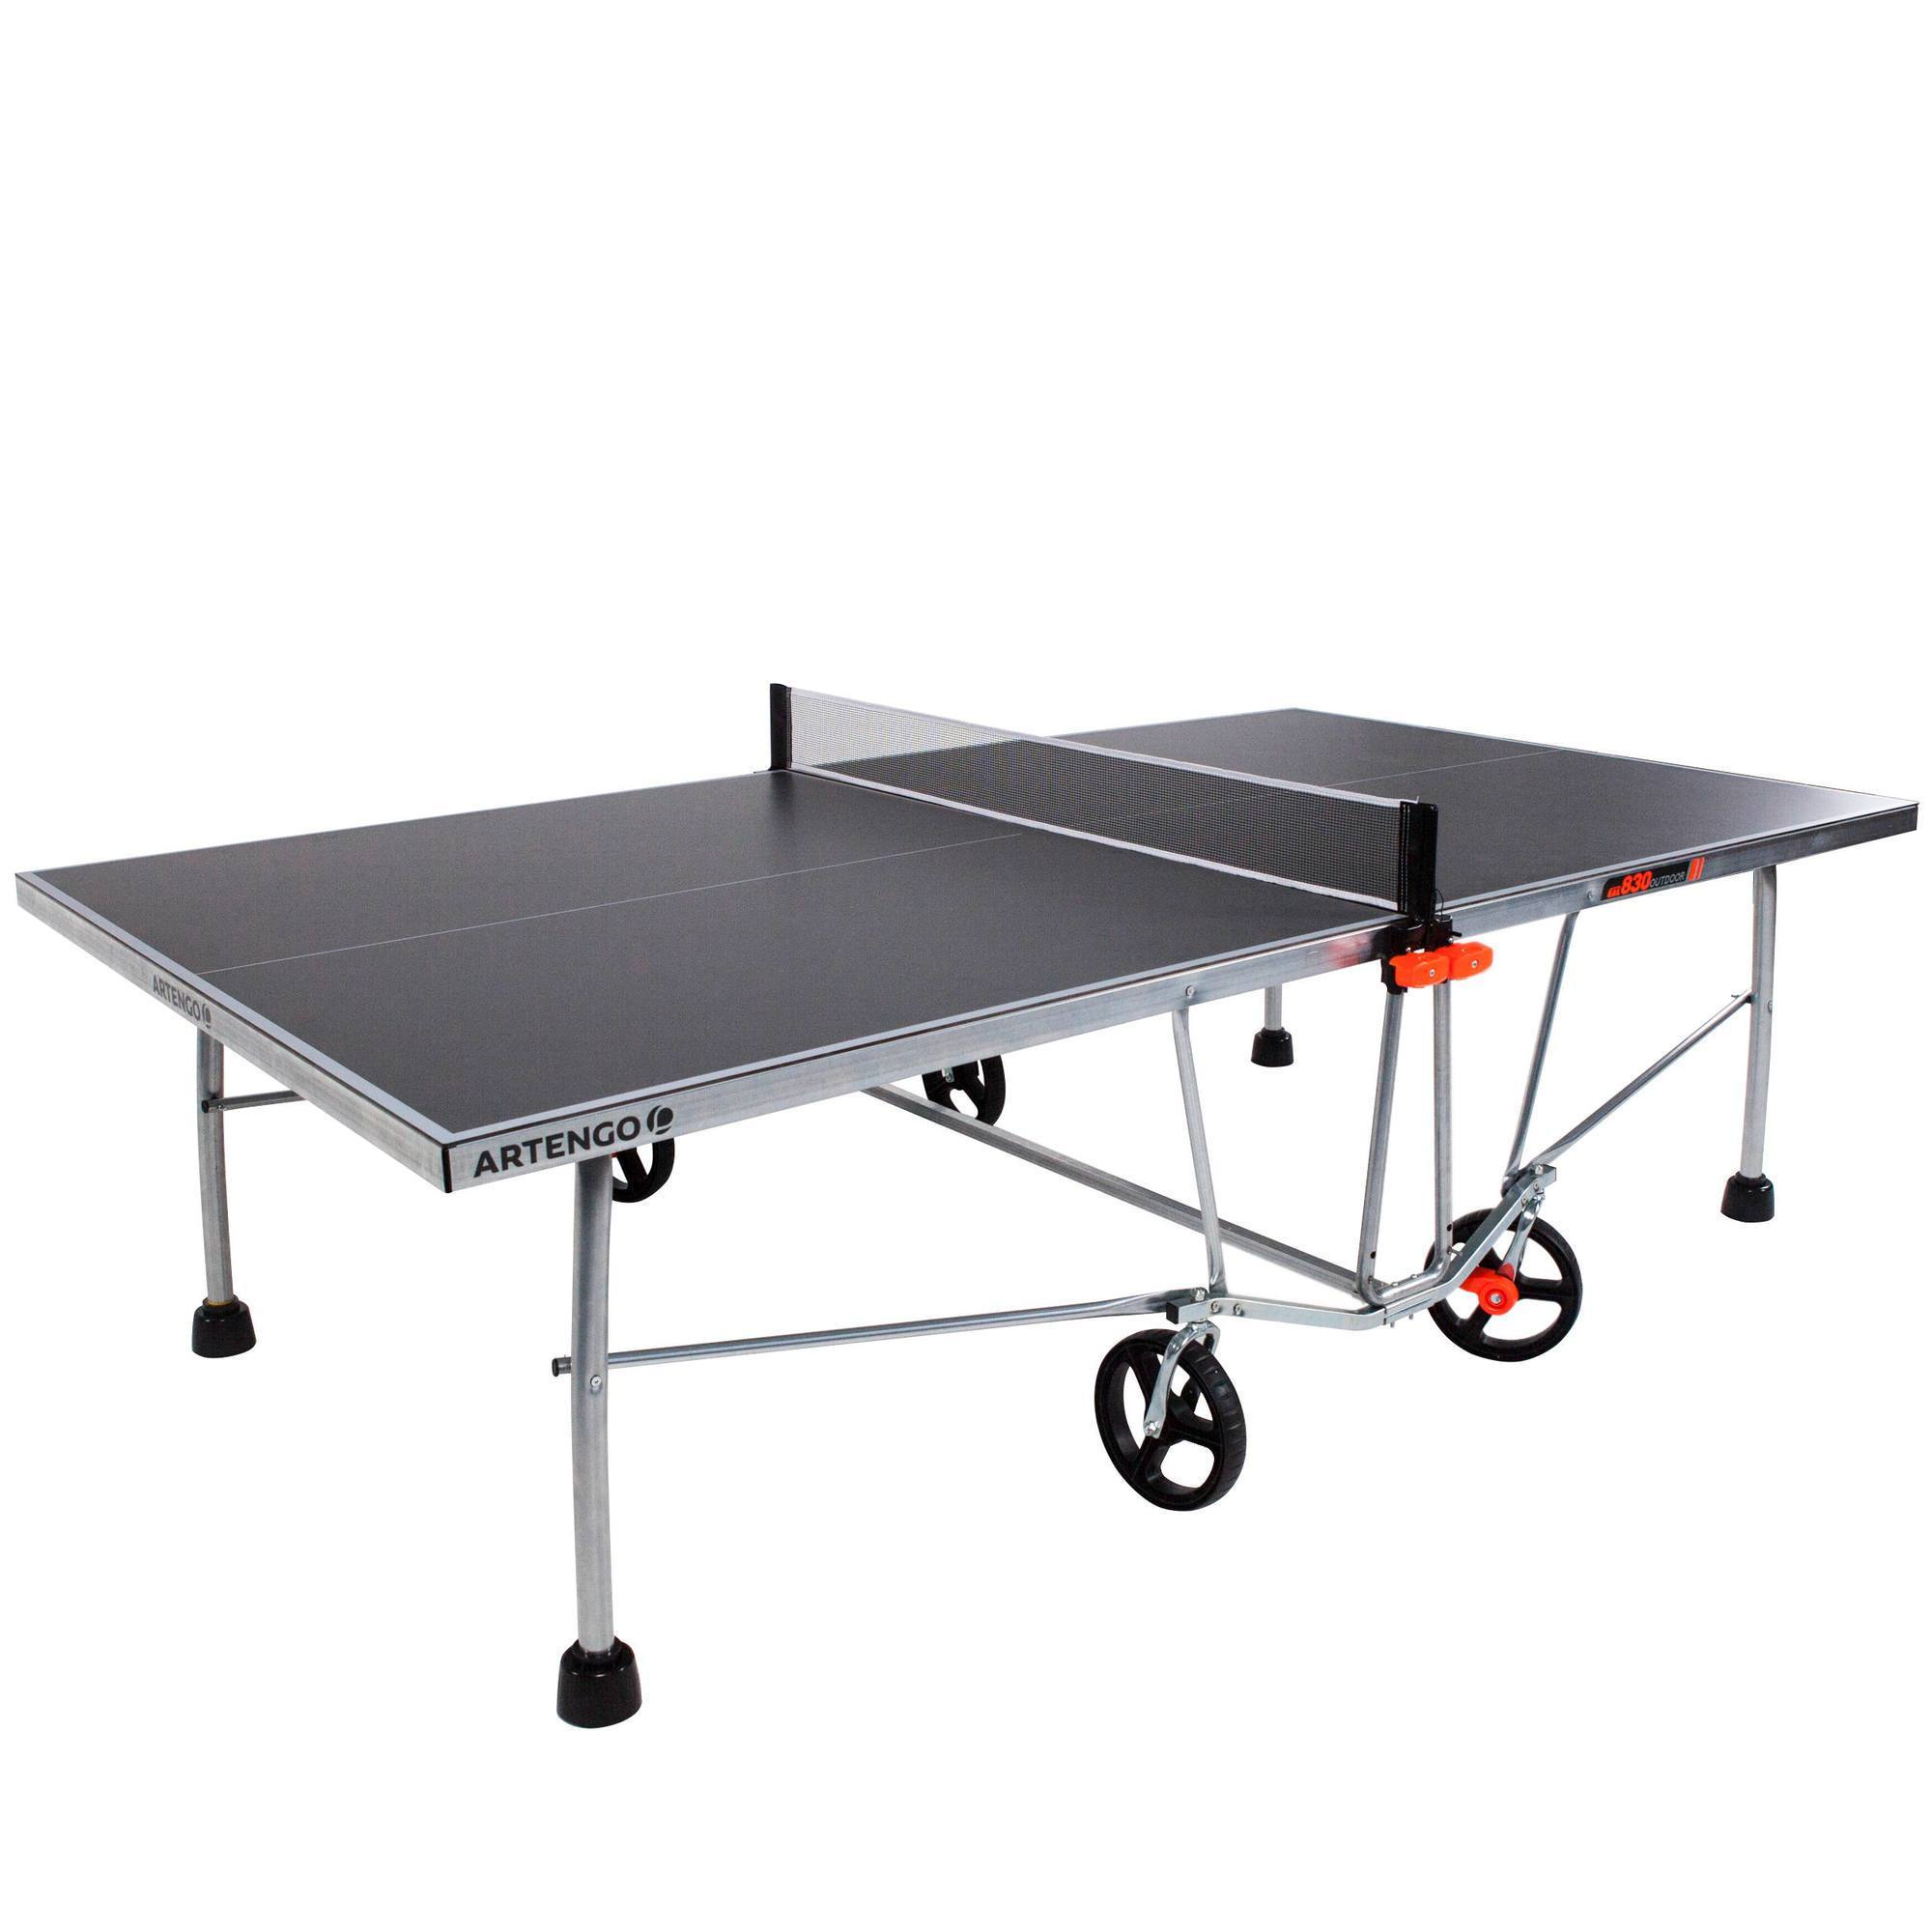 TABLE DE PING PONG  ARTENGO FT 830 Outddor